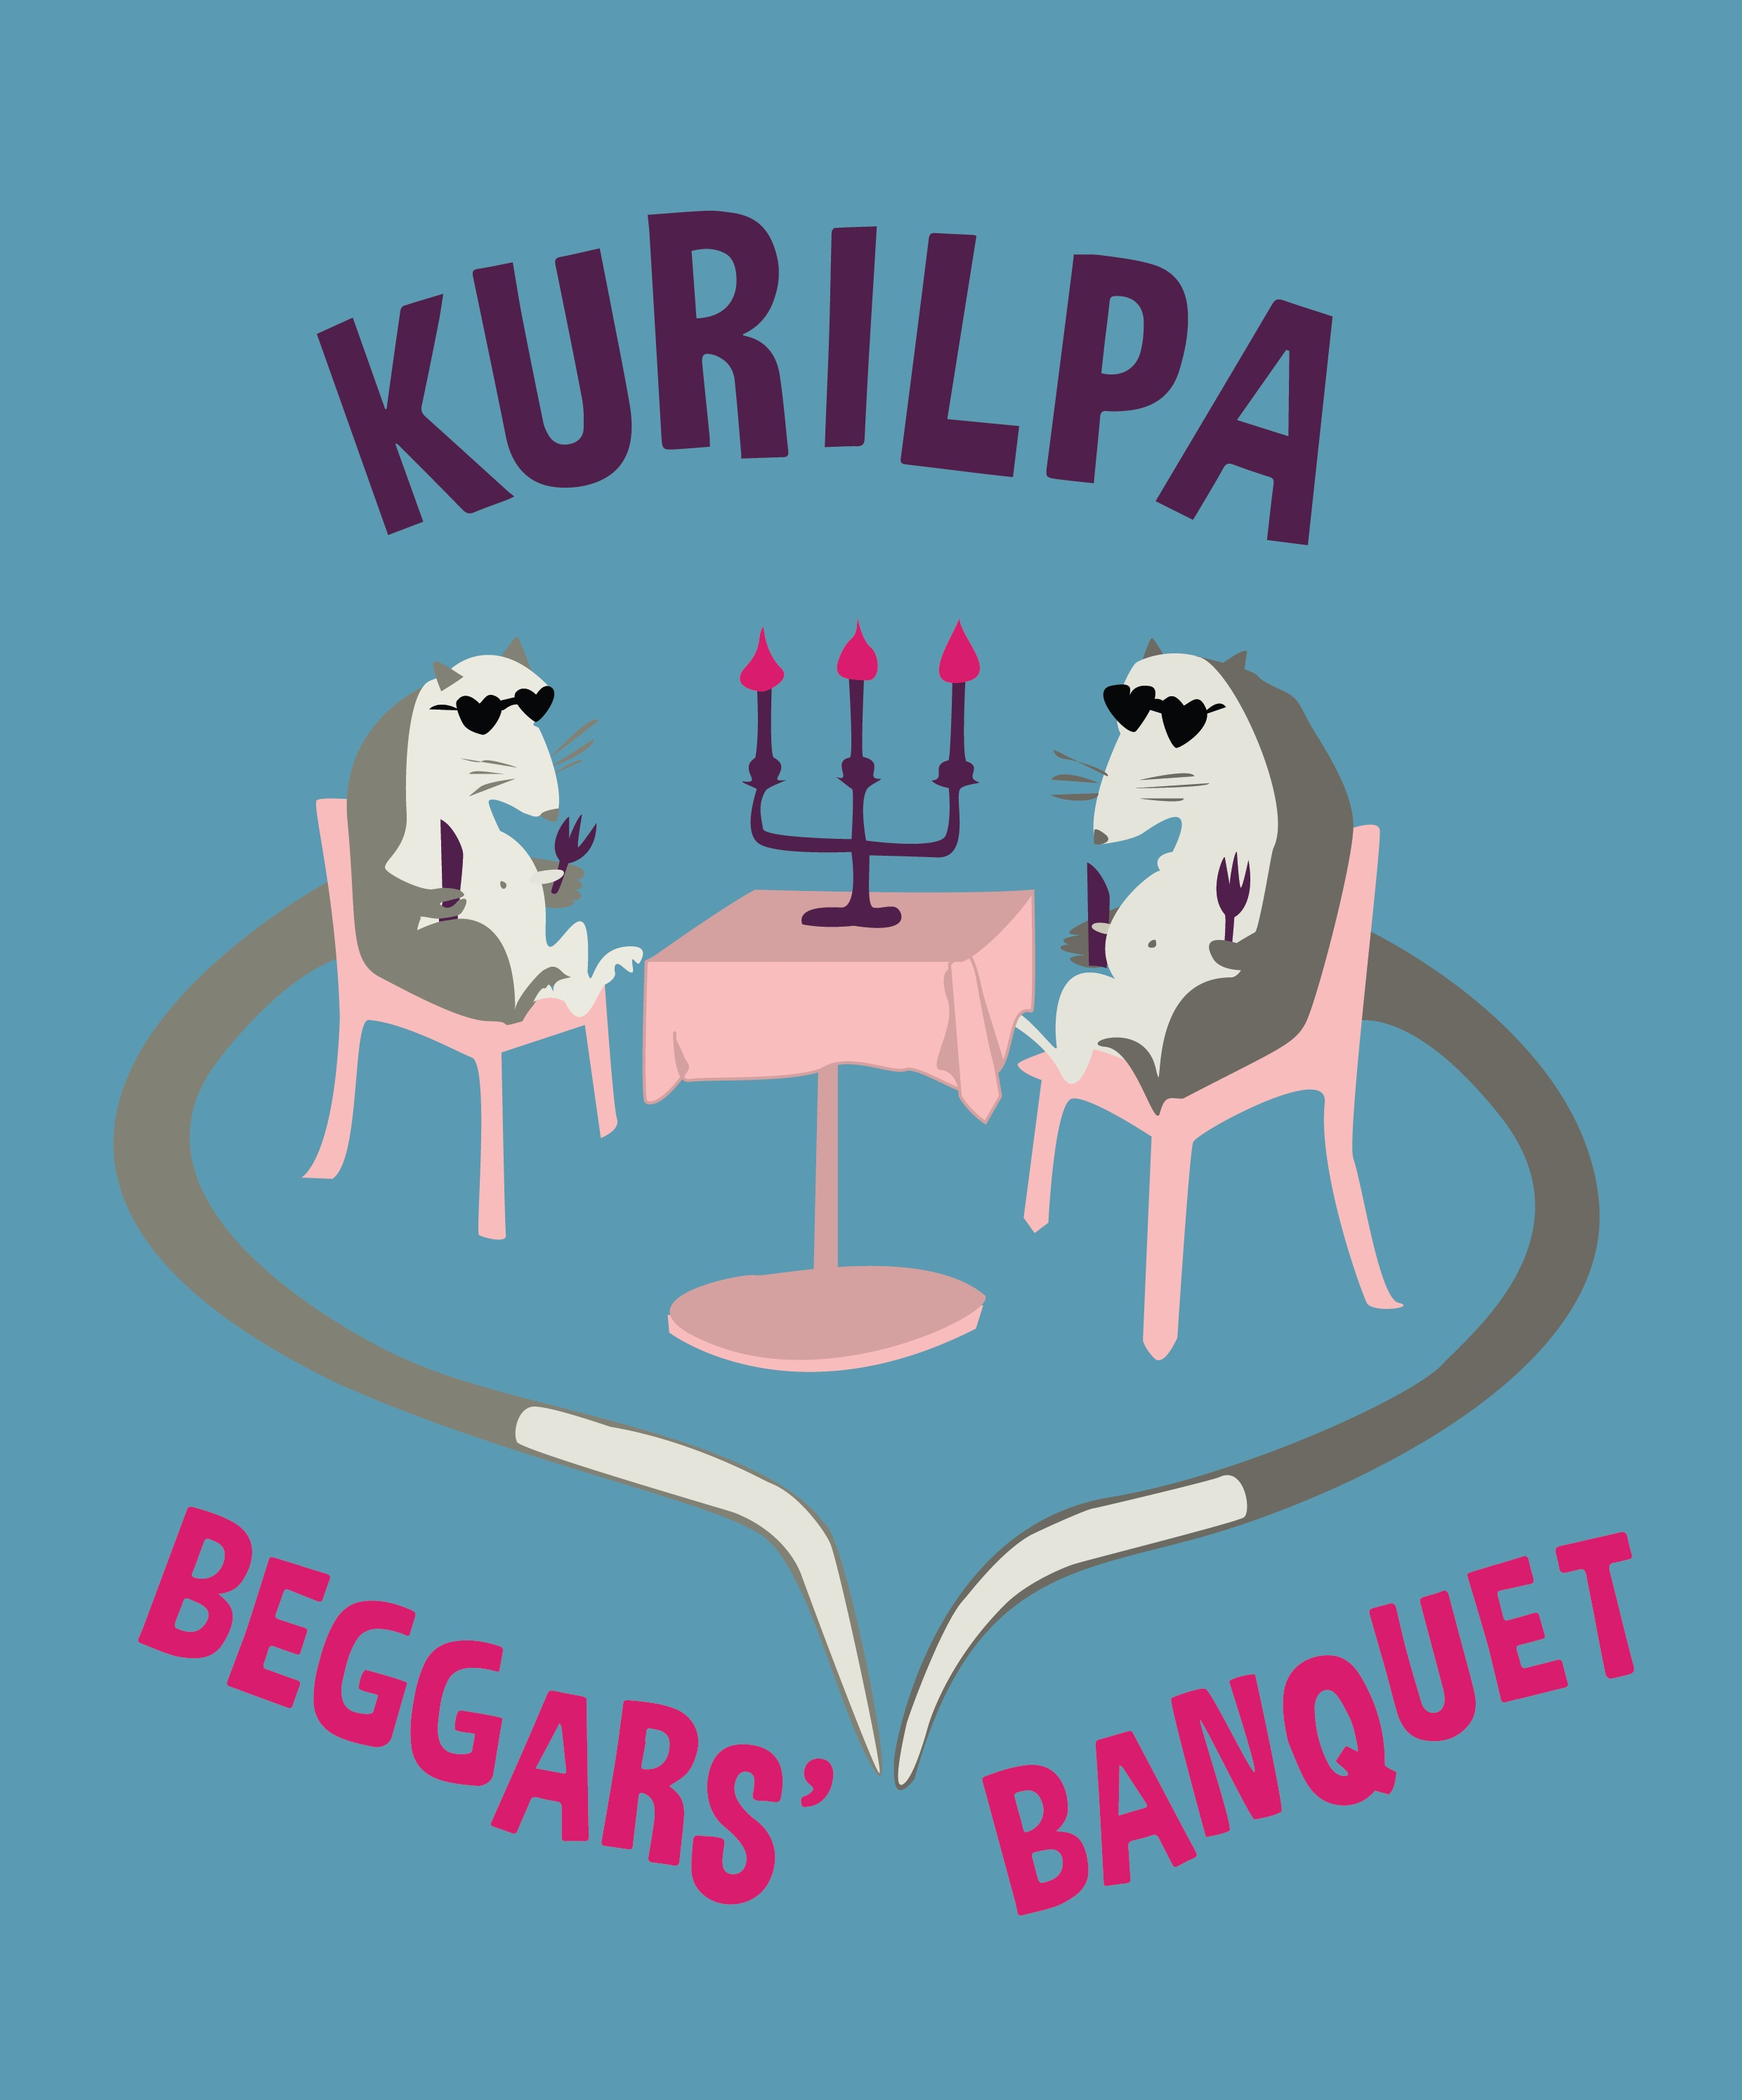 KURILPA BEGGARS' BANQUET   Poster design in collaboration with Adrian Buzolic for the community event organised by West End Community Association in 2017.